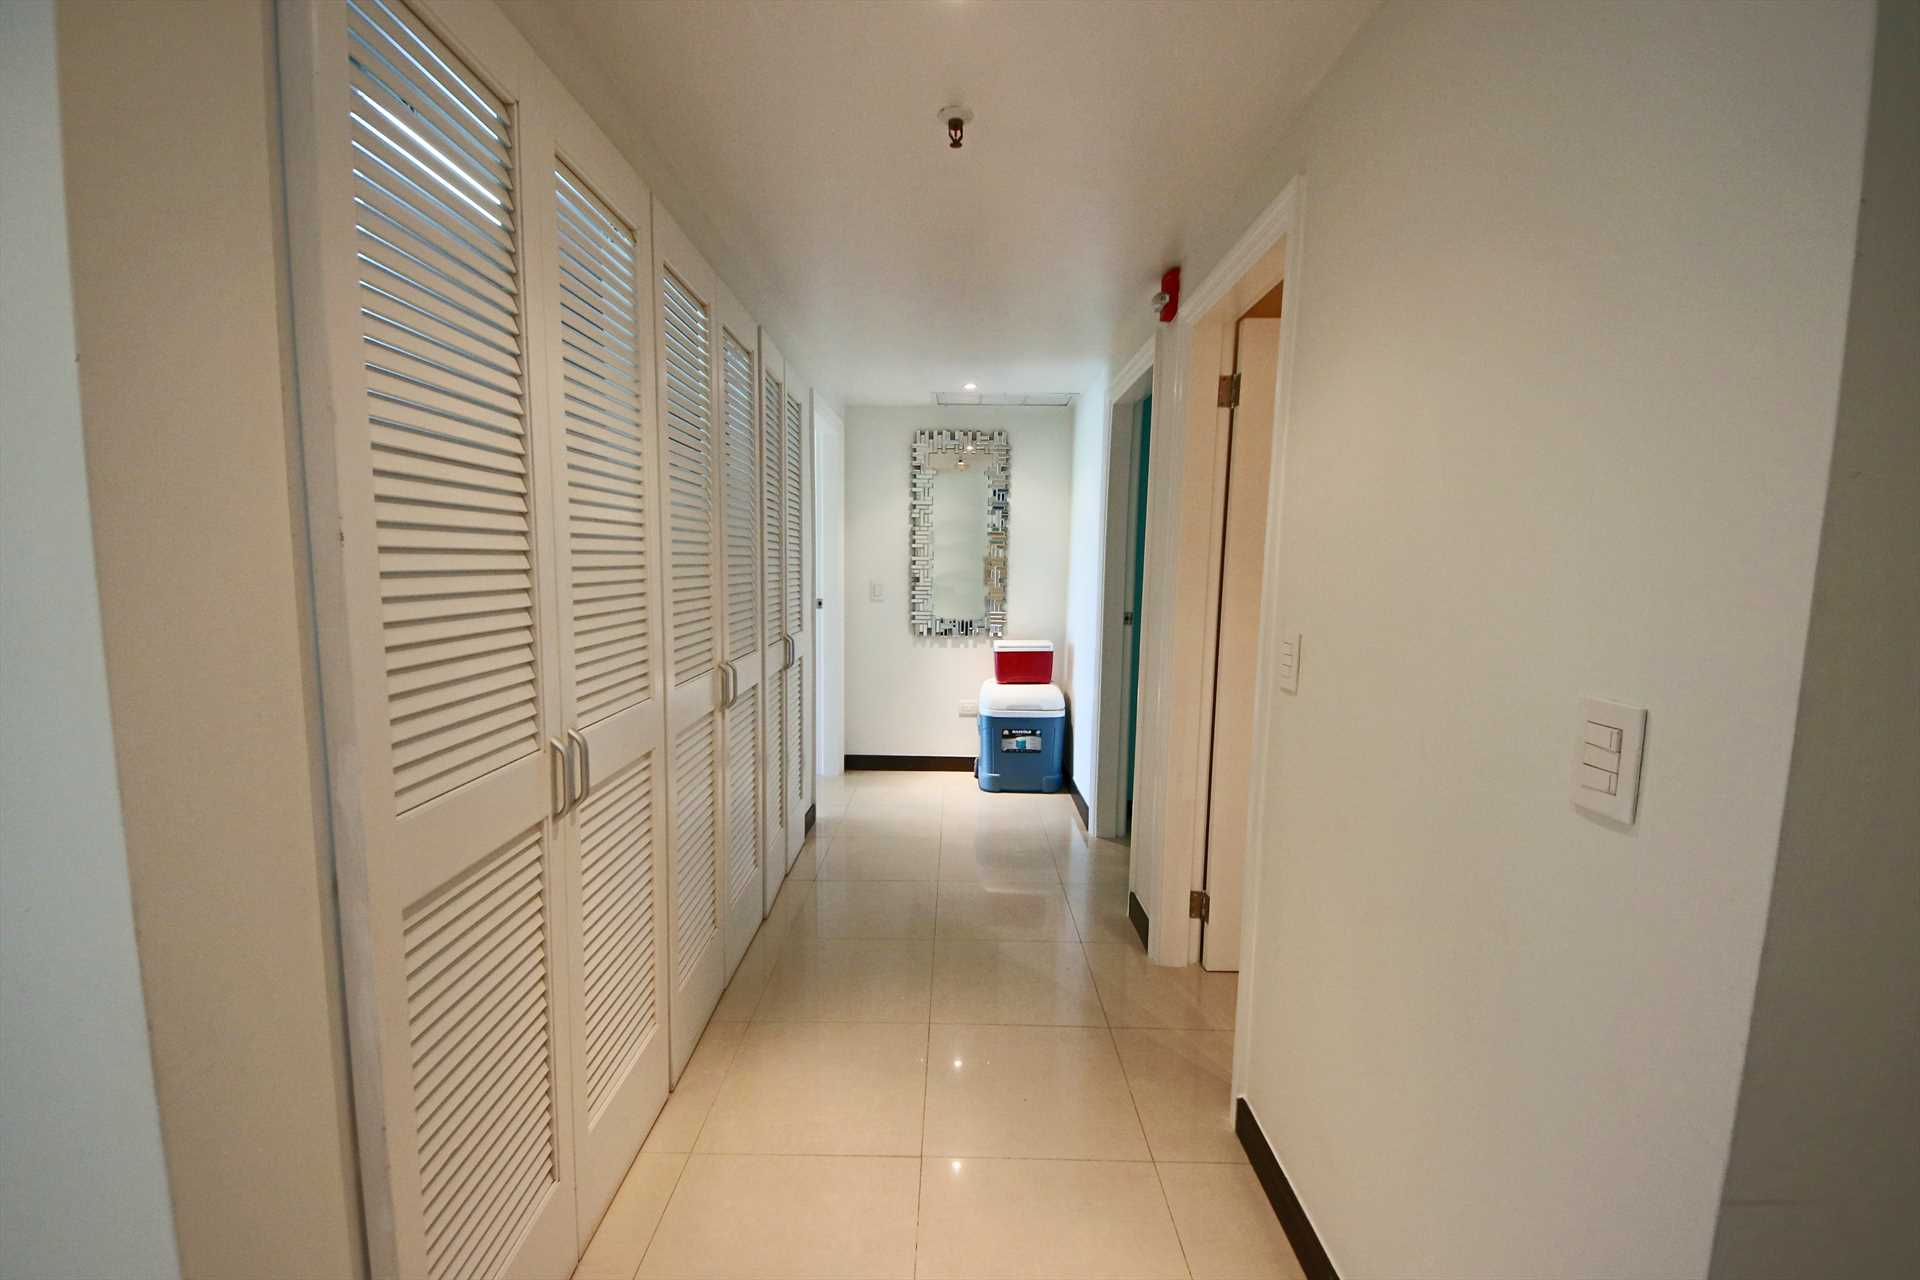 Entree flows into the laundry facility (washer/dryer) corridor towards the bedrooms